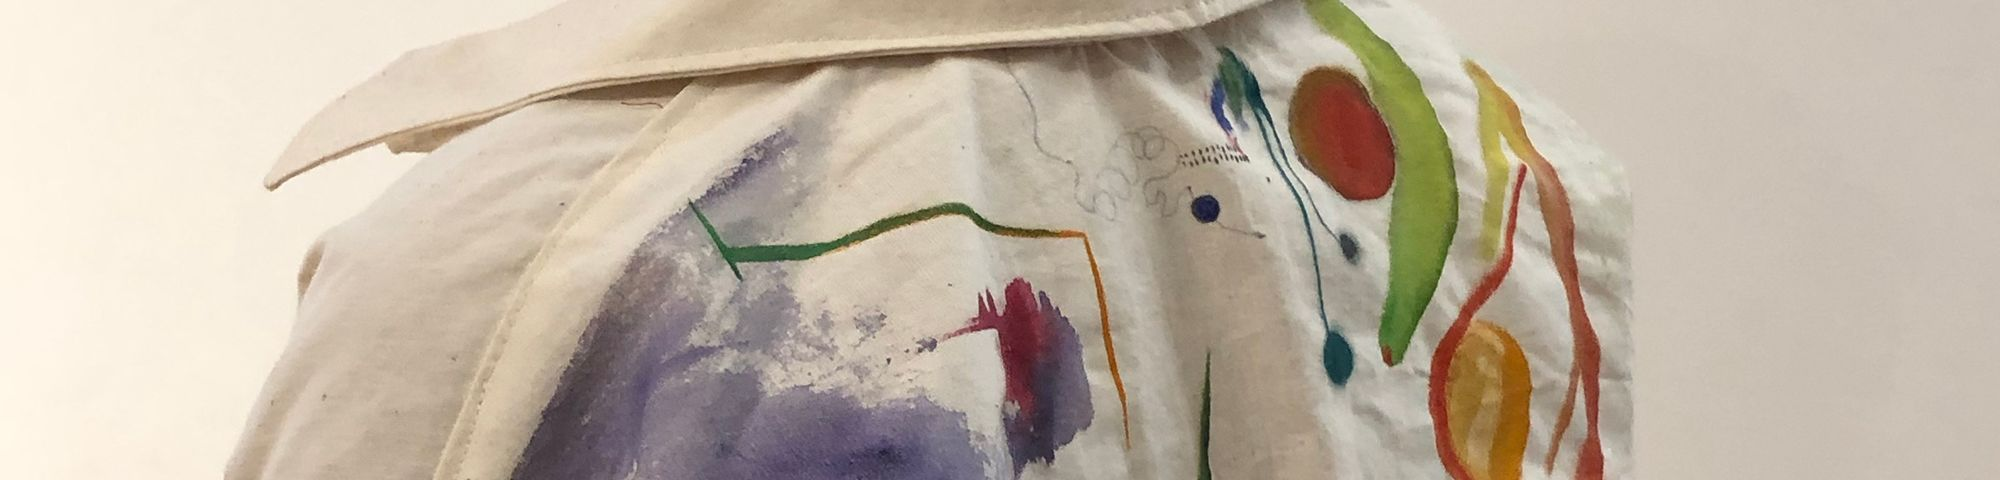 The view of a woman's back wearing a white jumpsuit which has been painted with Bauhaus-inspired designs, to be worn during the Bauhaus 100 performances in September 2019.